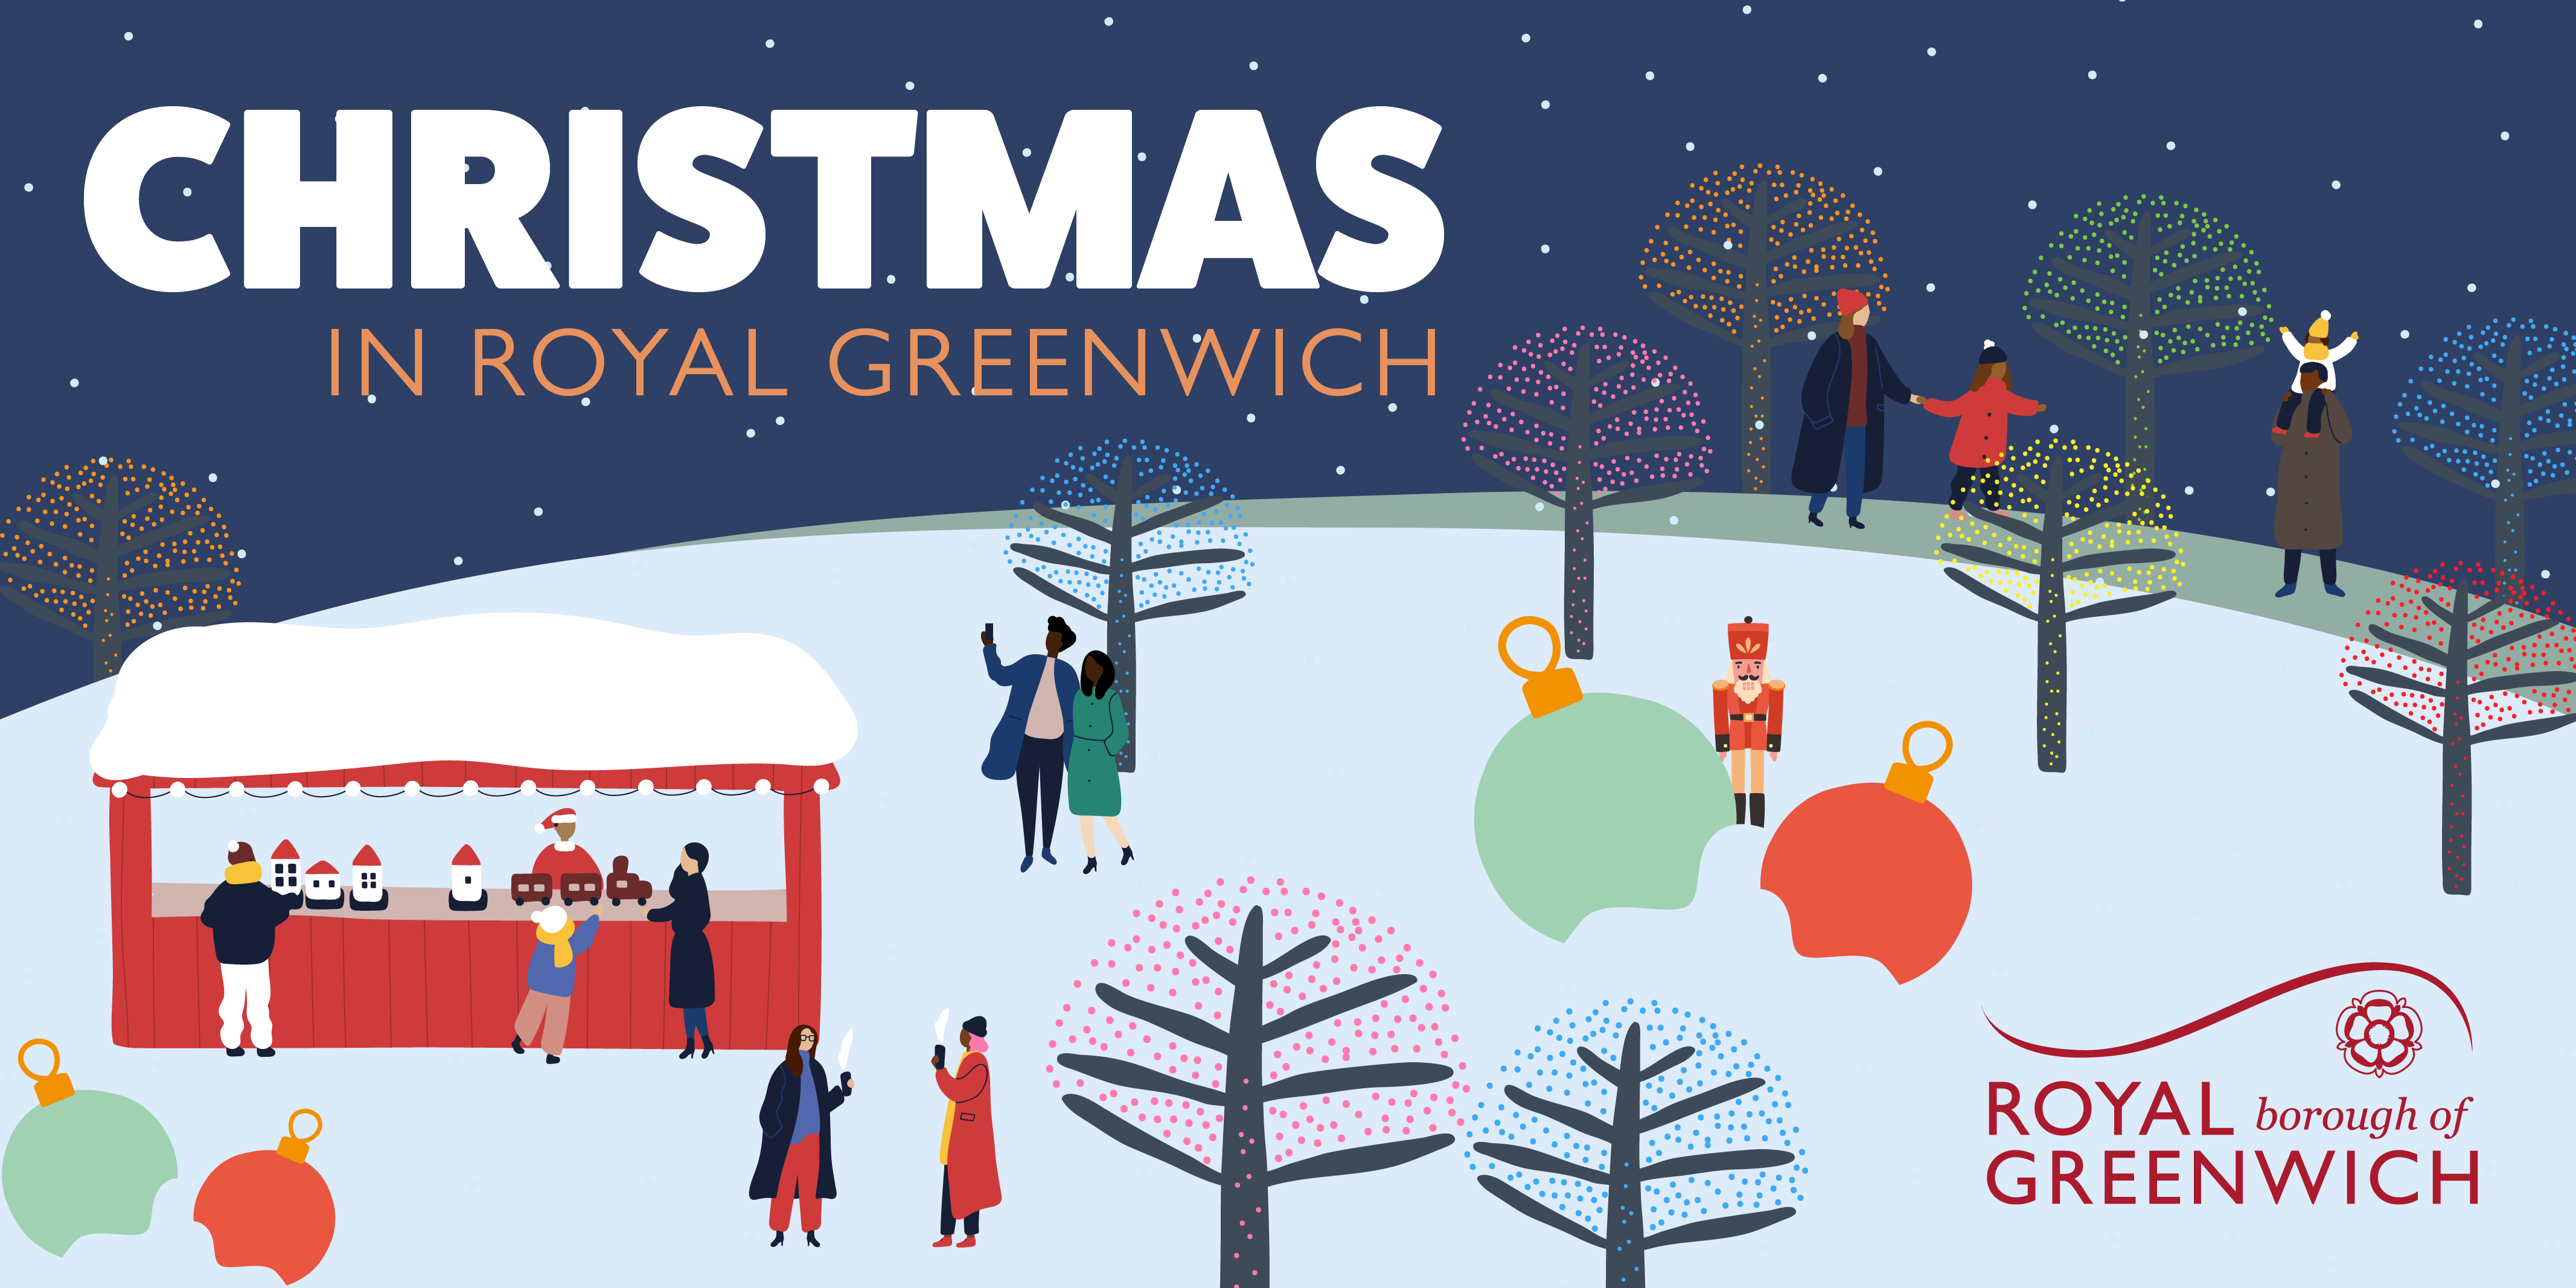 Christmas in Royal Greenwich with illustrations of people in the snow.